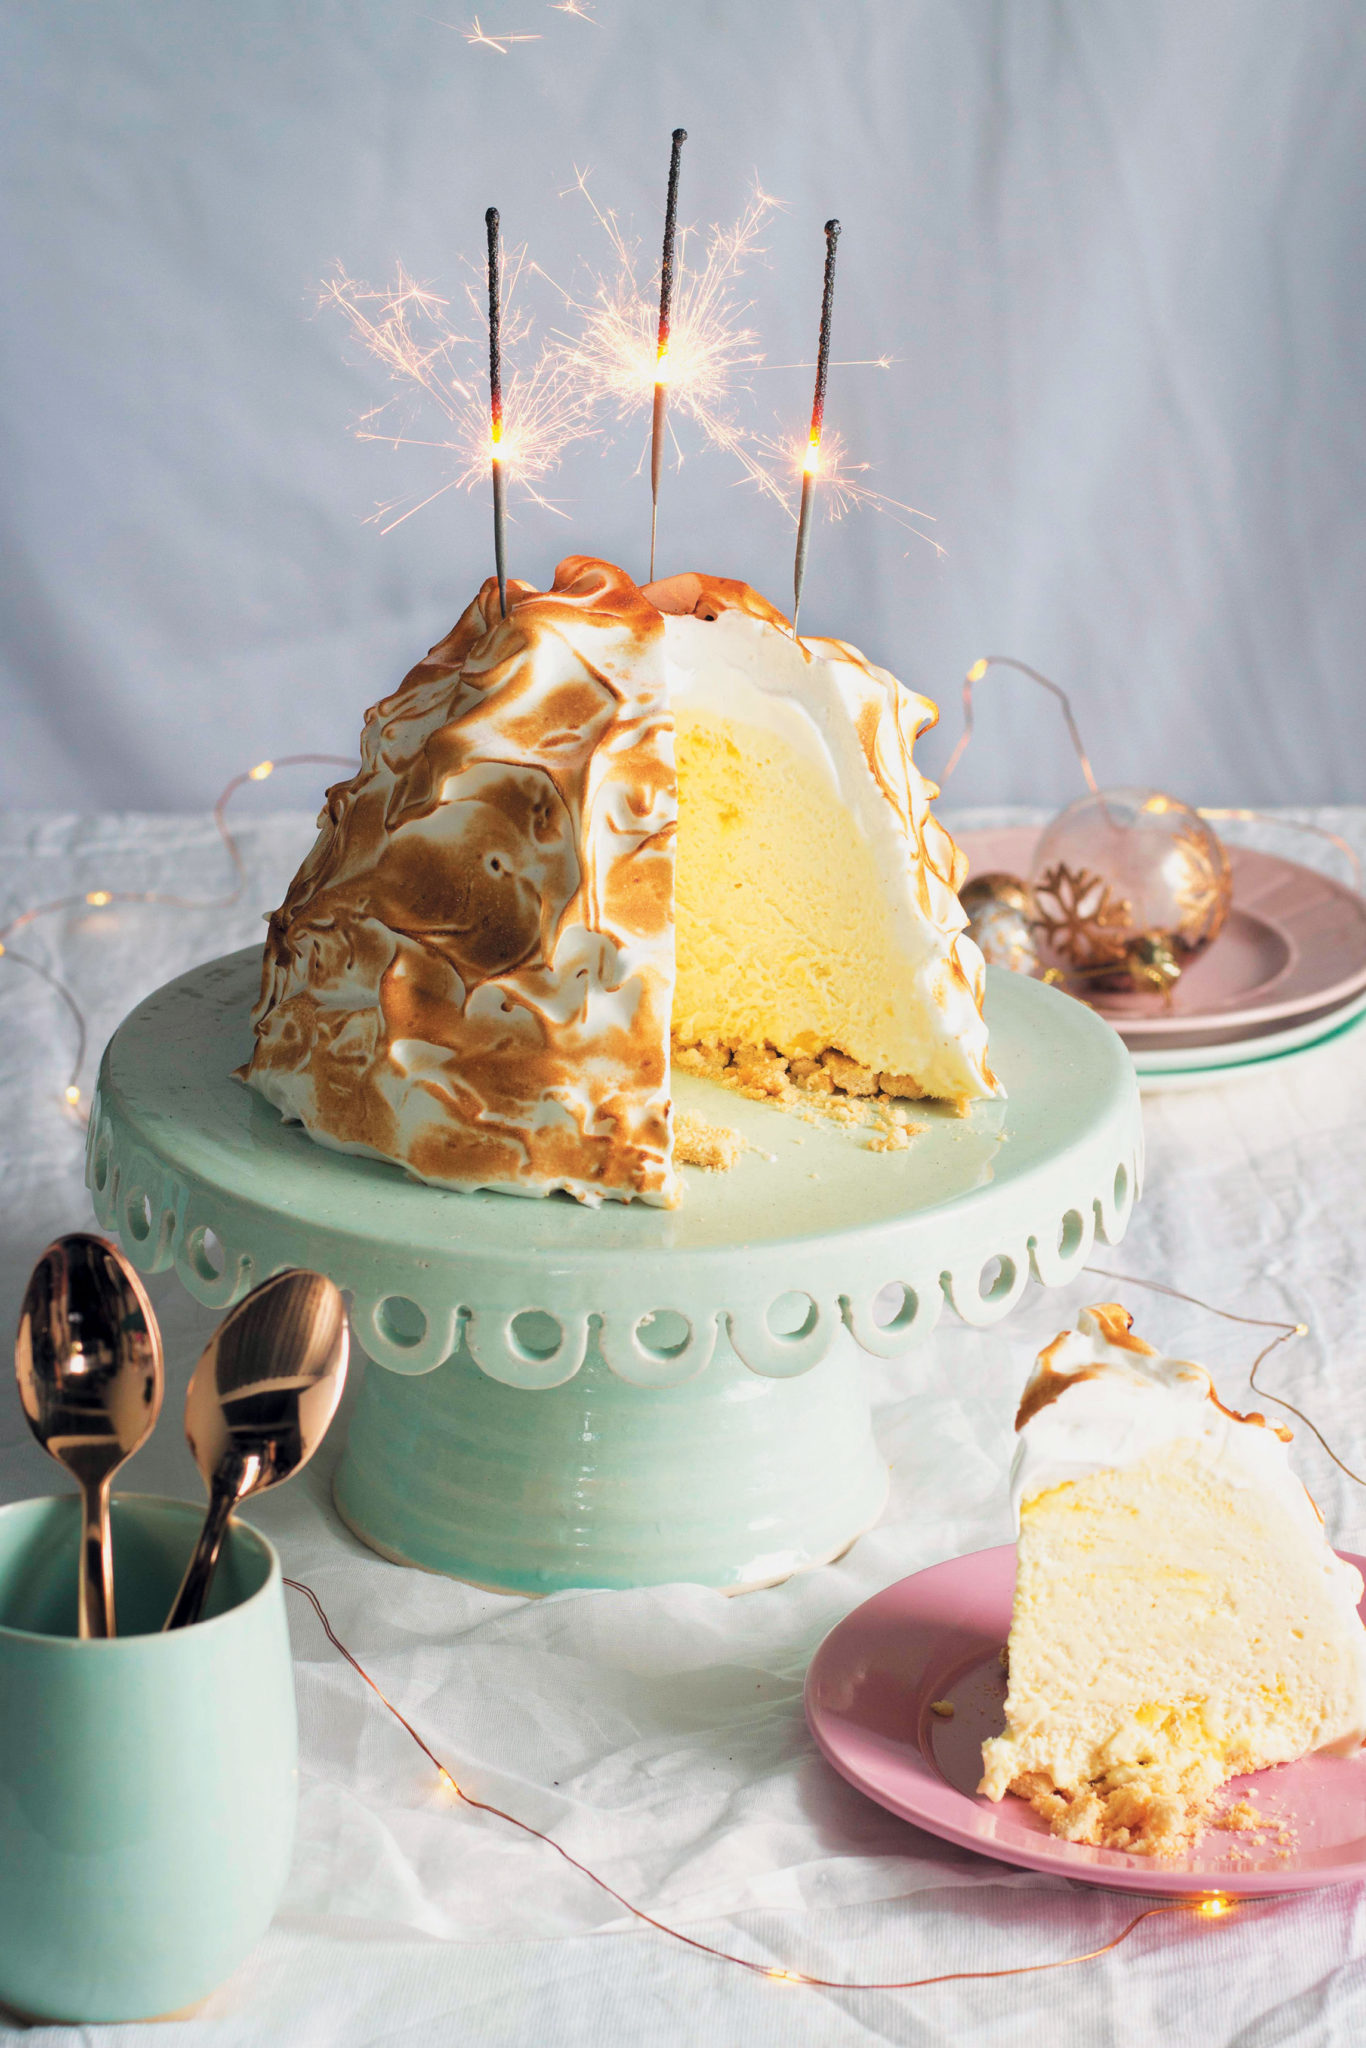 Sharing A Lemon Meringue Ice Cream Cake Recipe — Dishmaps